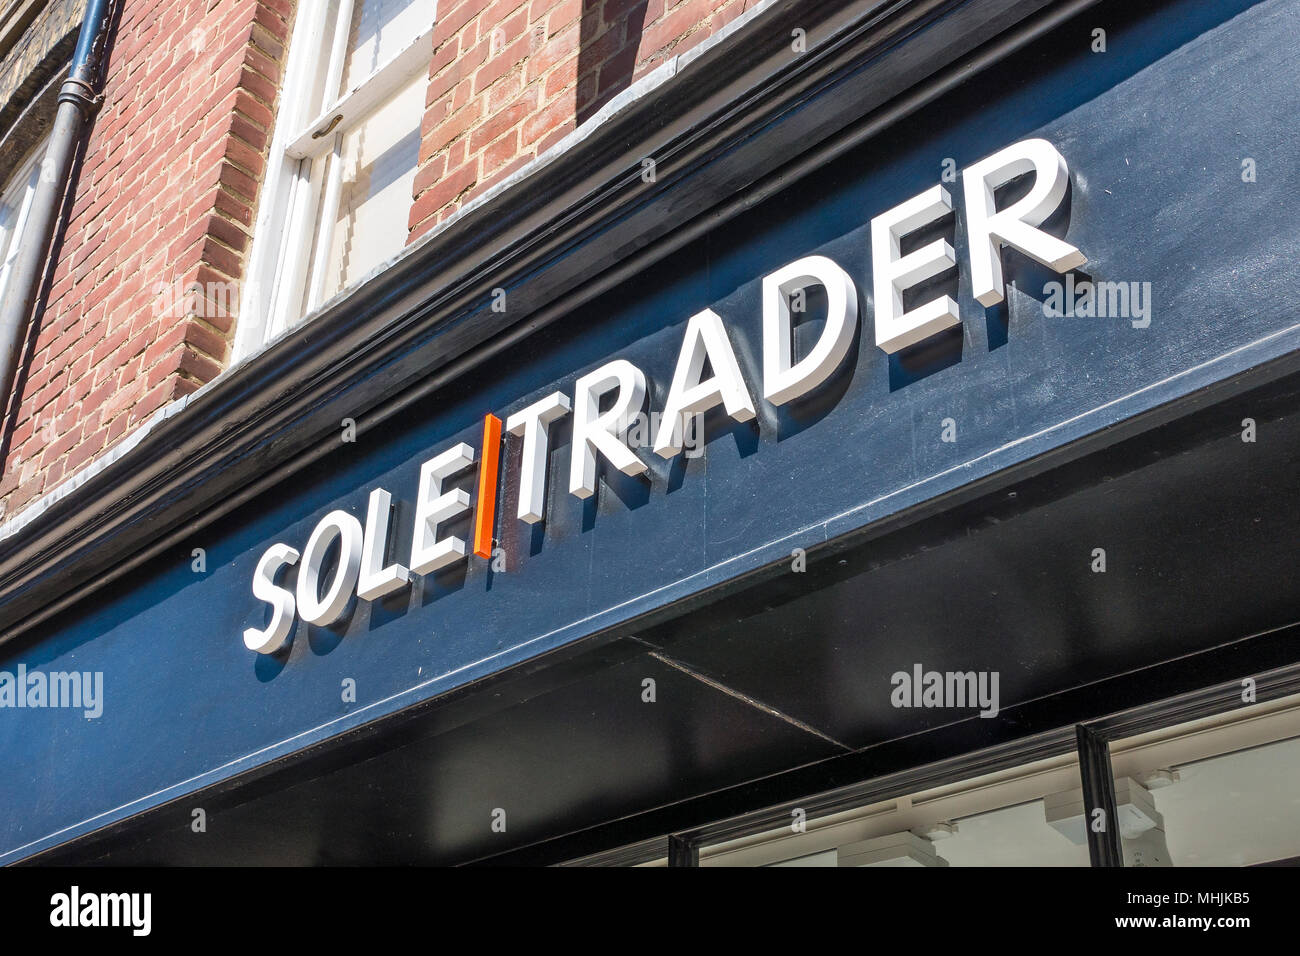 Sole Trader,Sign,Fashion,Shoe Shop,High Street,Canterbury,Kent - Stock Image